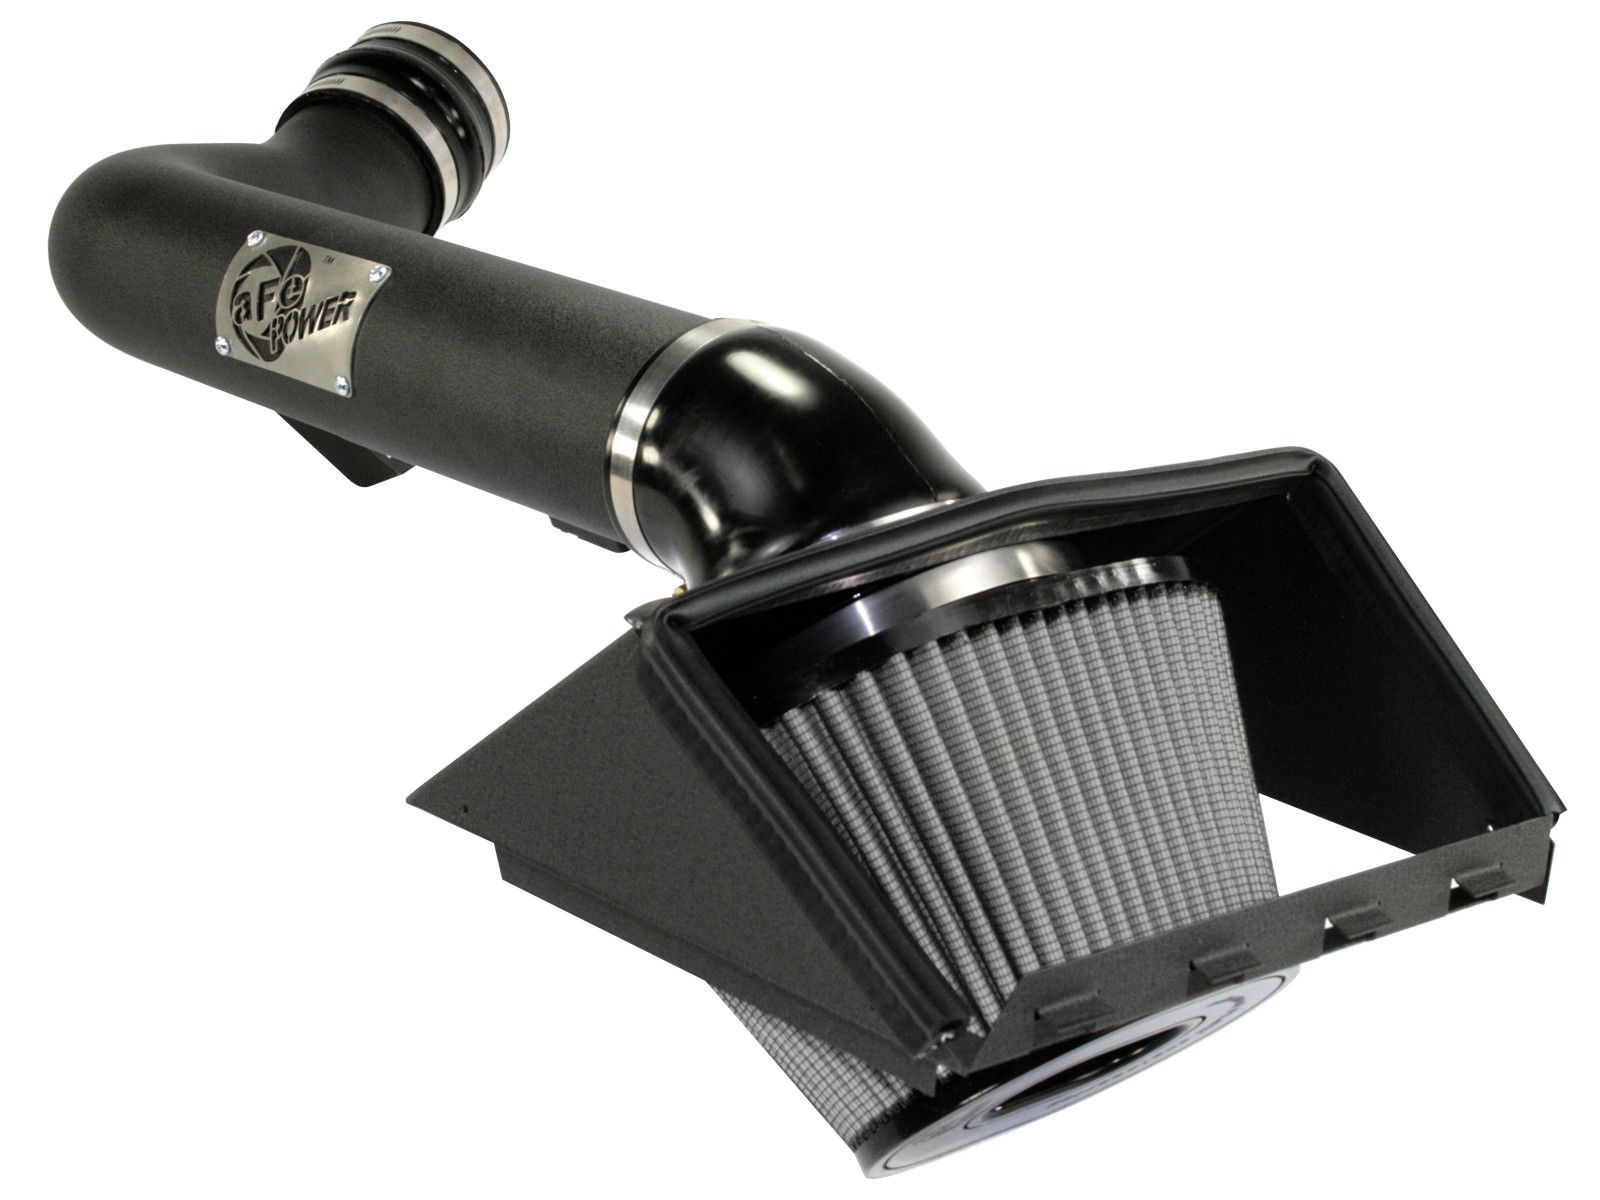 aFe POWER 51-11902-1 Magnum FORCE Stage-2 Pro DRY S Cold Air Intake System